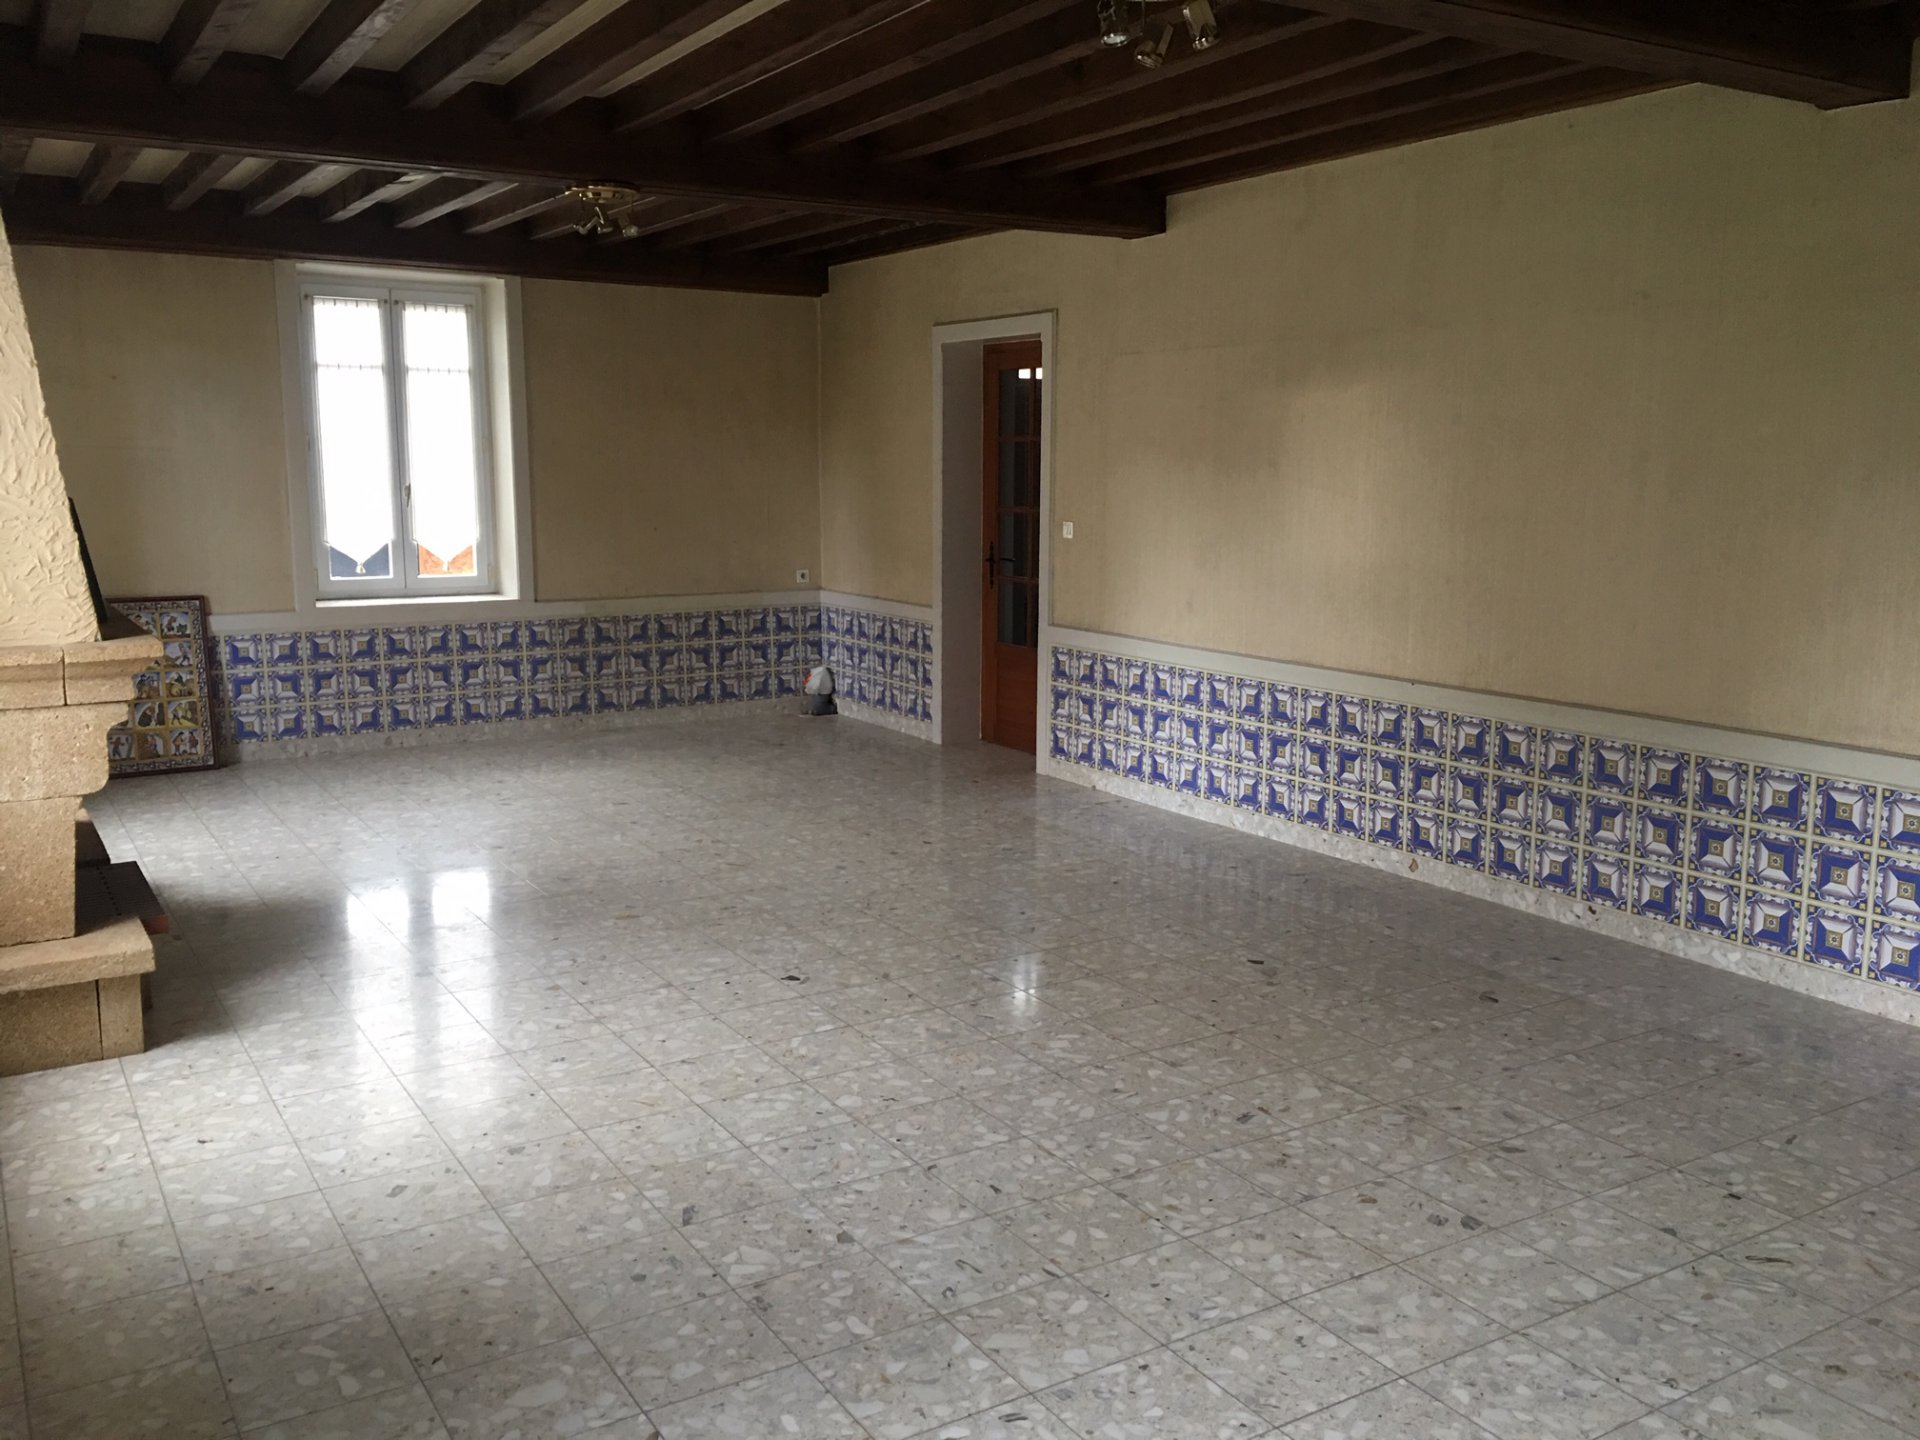 Vente Appartement - Saint-Genest-Lerpt